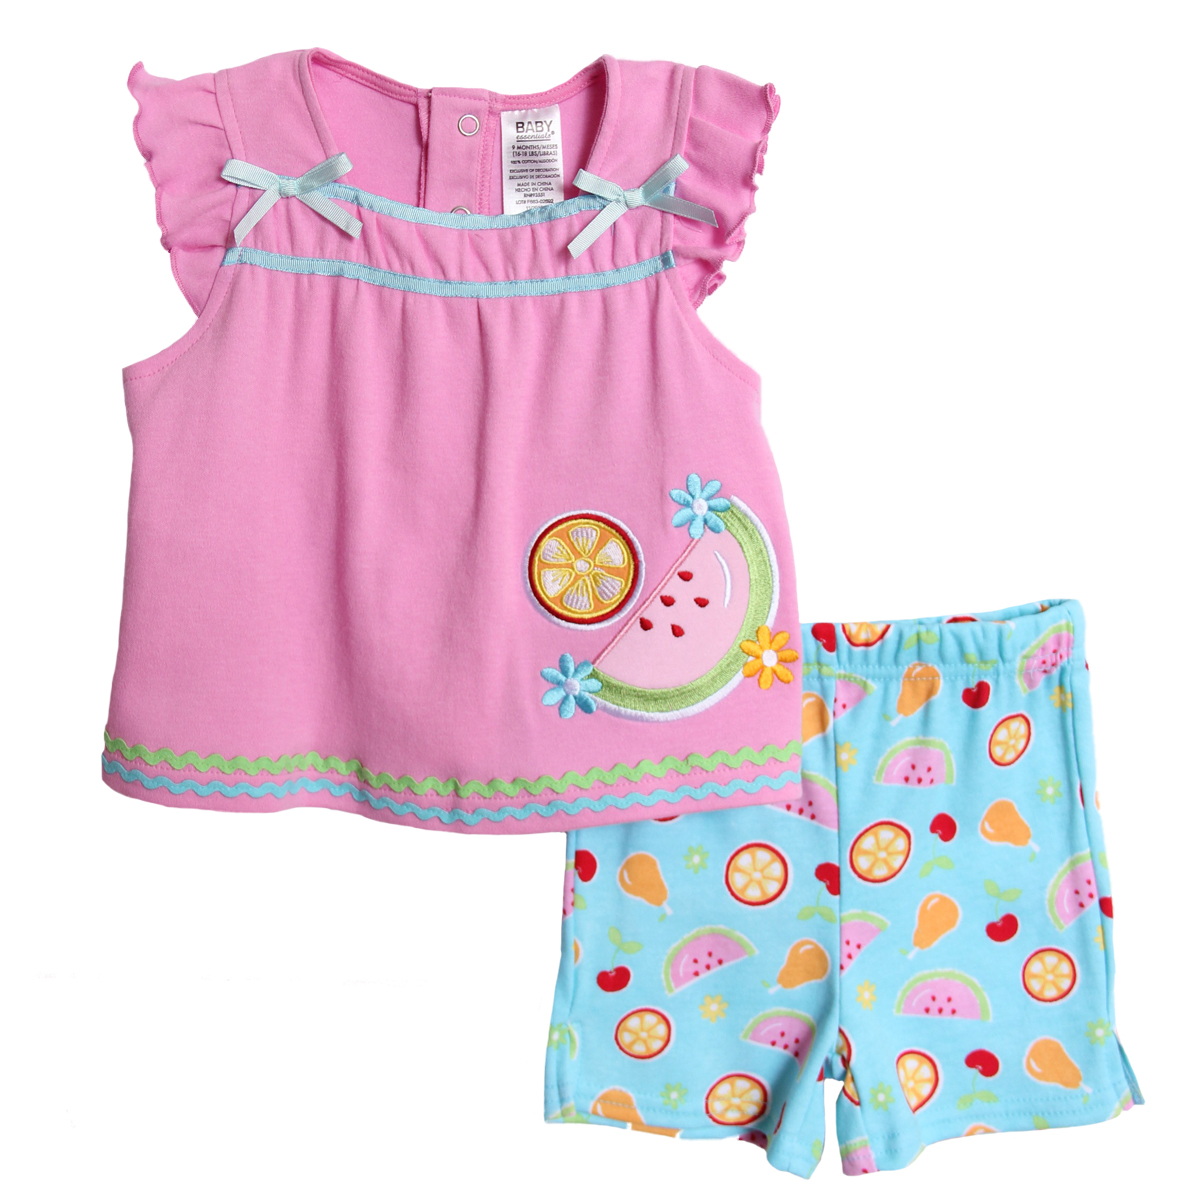 Baby Essentials Newborn Girls 2 Piece Pink Top Blue Fruit Knit Shorts Set at Sears.com